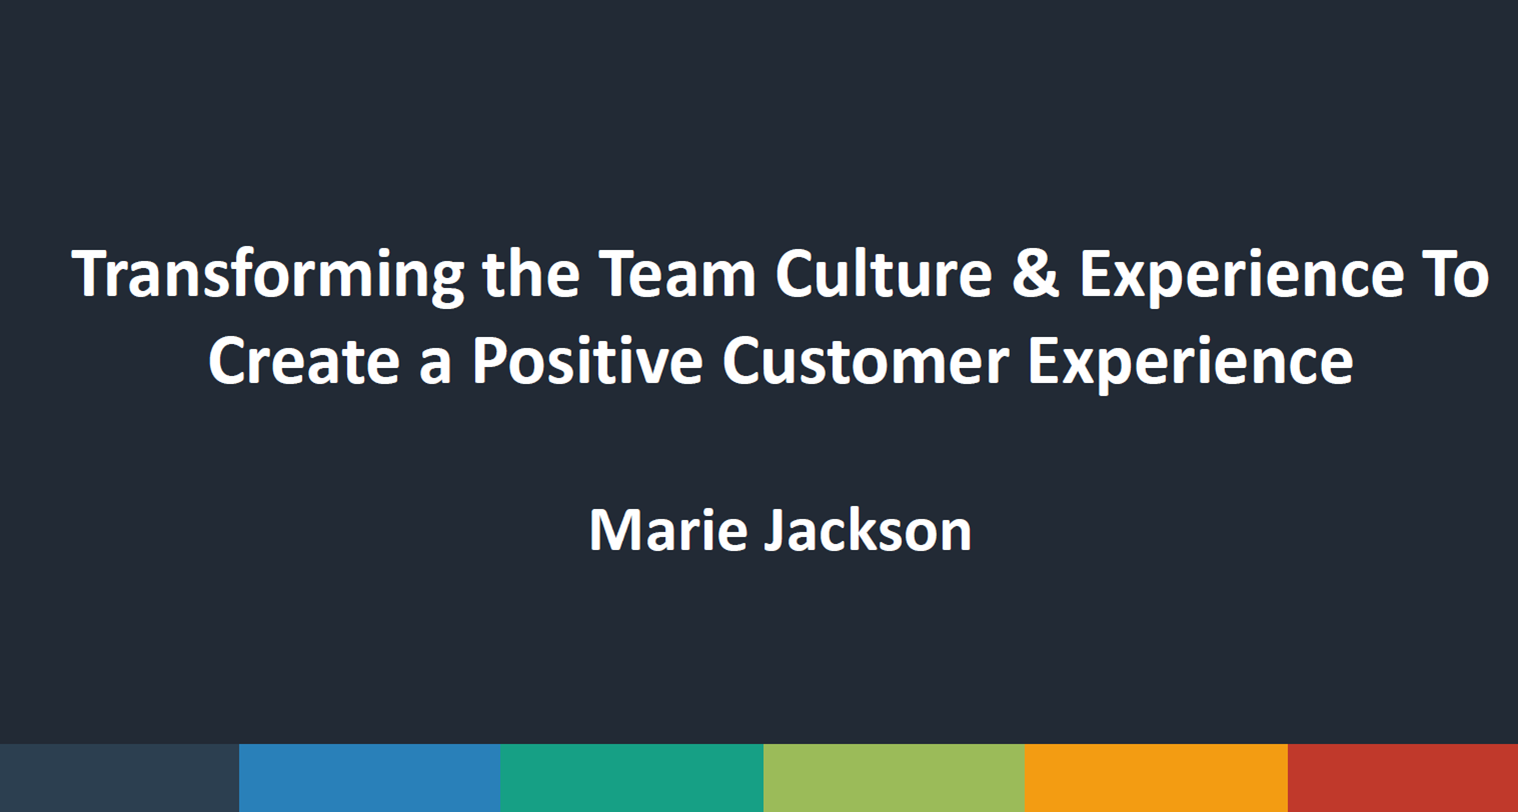 Transforming the Team Culture and Experience to Create a Customer Experience